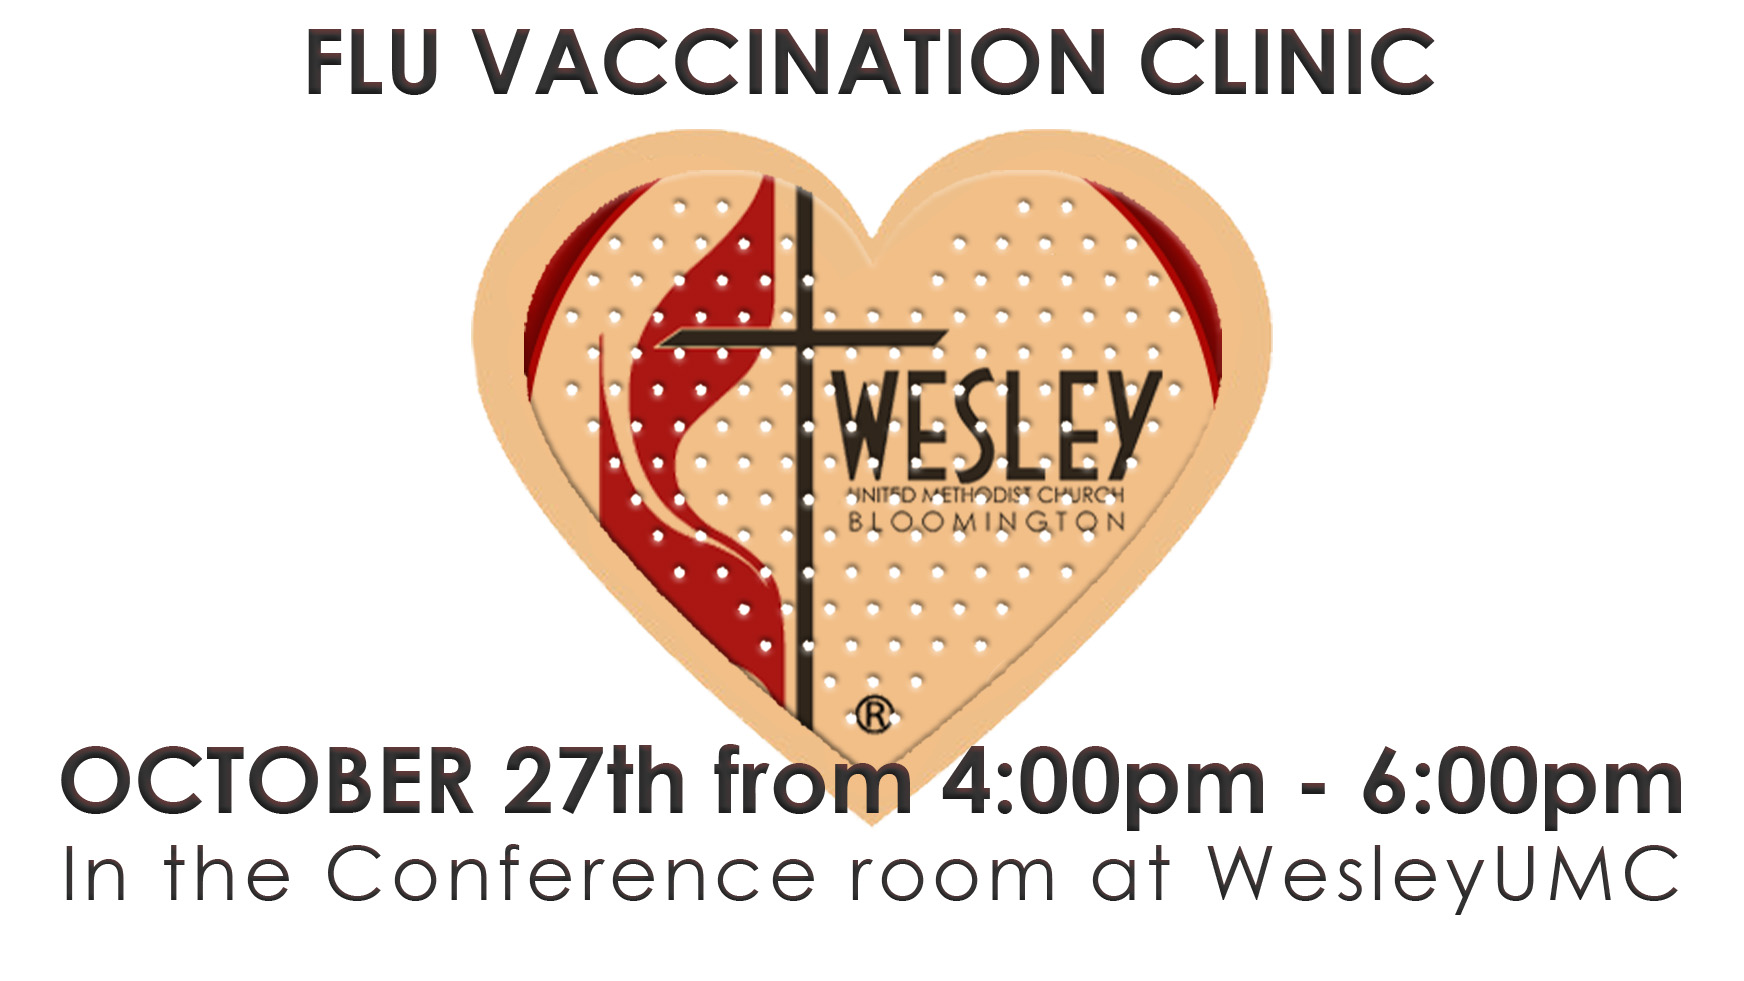 flu vaccination clinic at wesley umc